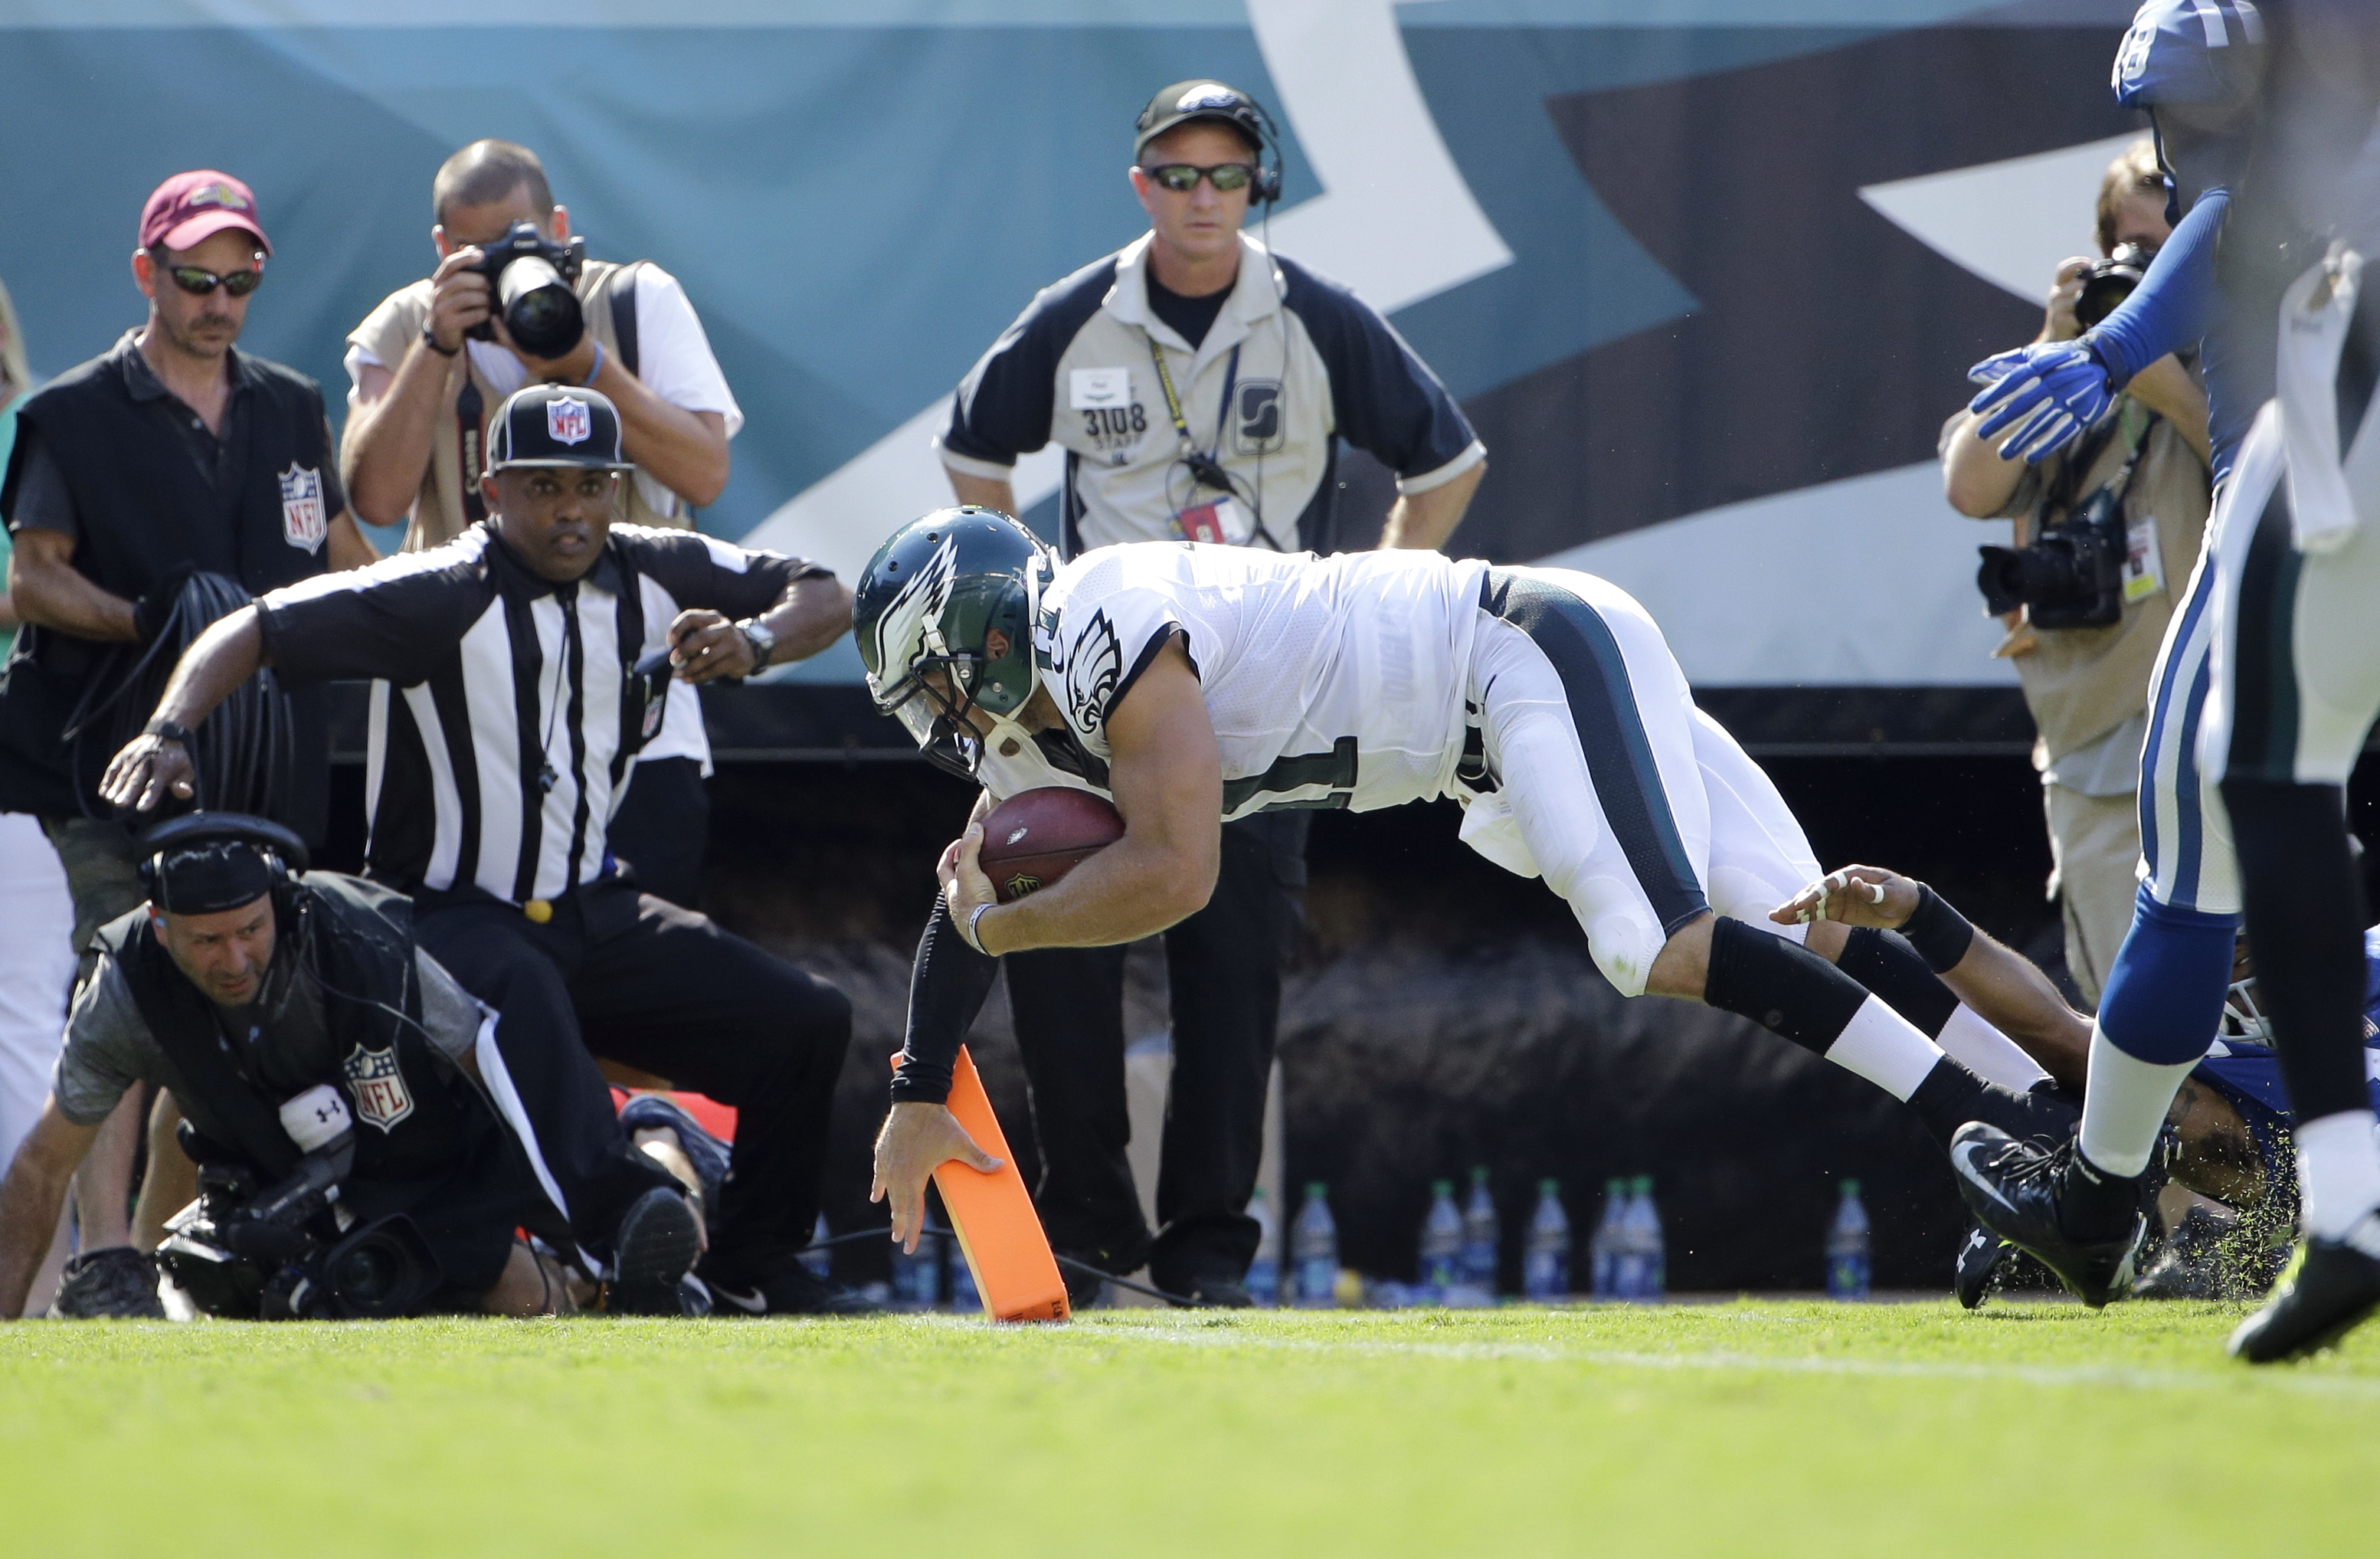 Philadelphia Eagles' Tim Tebow scores a touchdown during the second half of a preseason NFL football game against the Indianapolis Colts, Sunday, Aug. 16, 2015, in Philadelphia. (AP Photo/Matt Rourke)